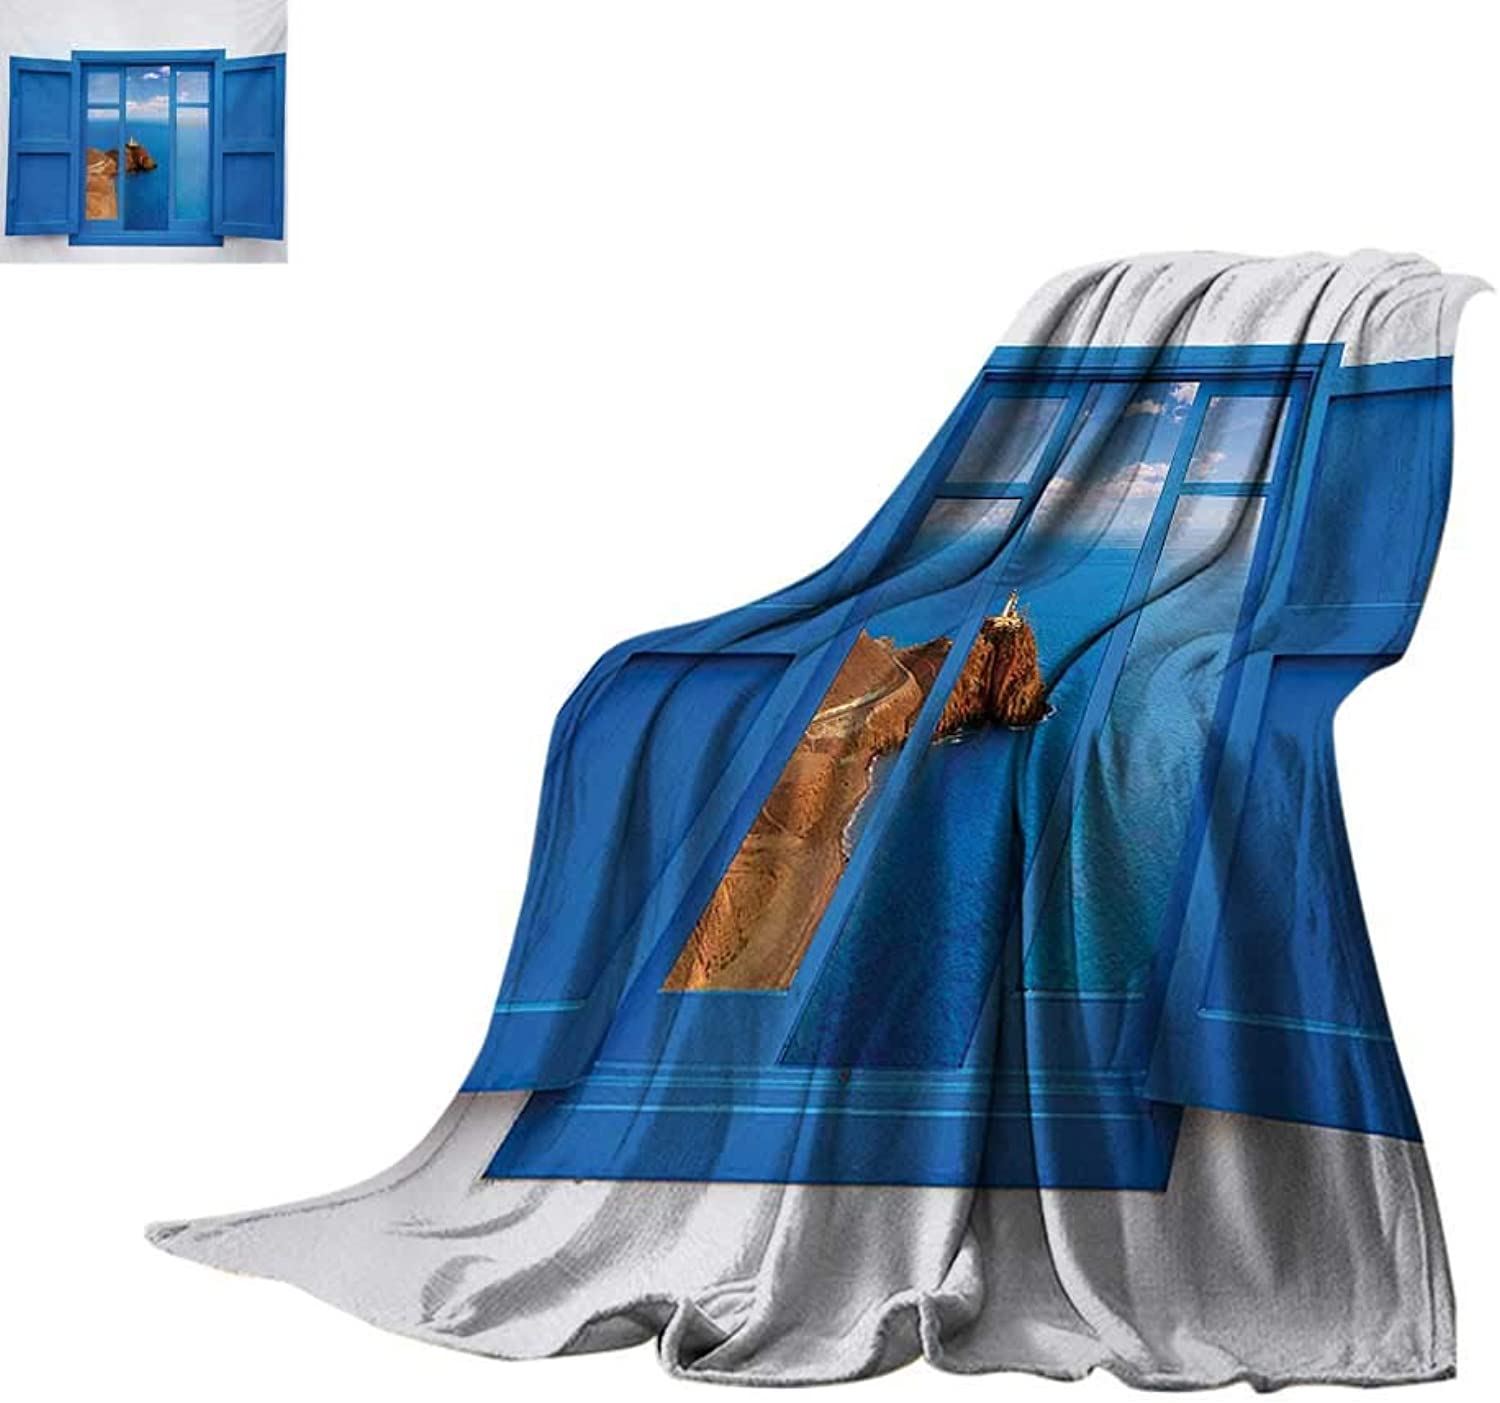 Lighthouse Weave Pattern Blanket View from Window of Cabo Lighthouse Photo Mount Mediterranean Image Art Print Summer Quilt Comforter 60 x50  bluee White